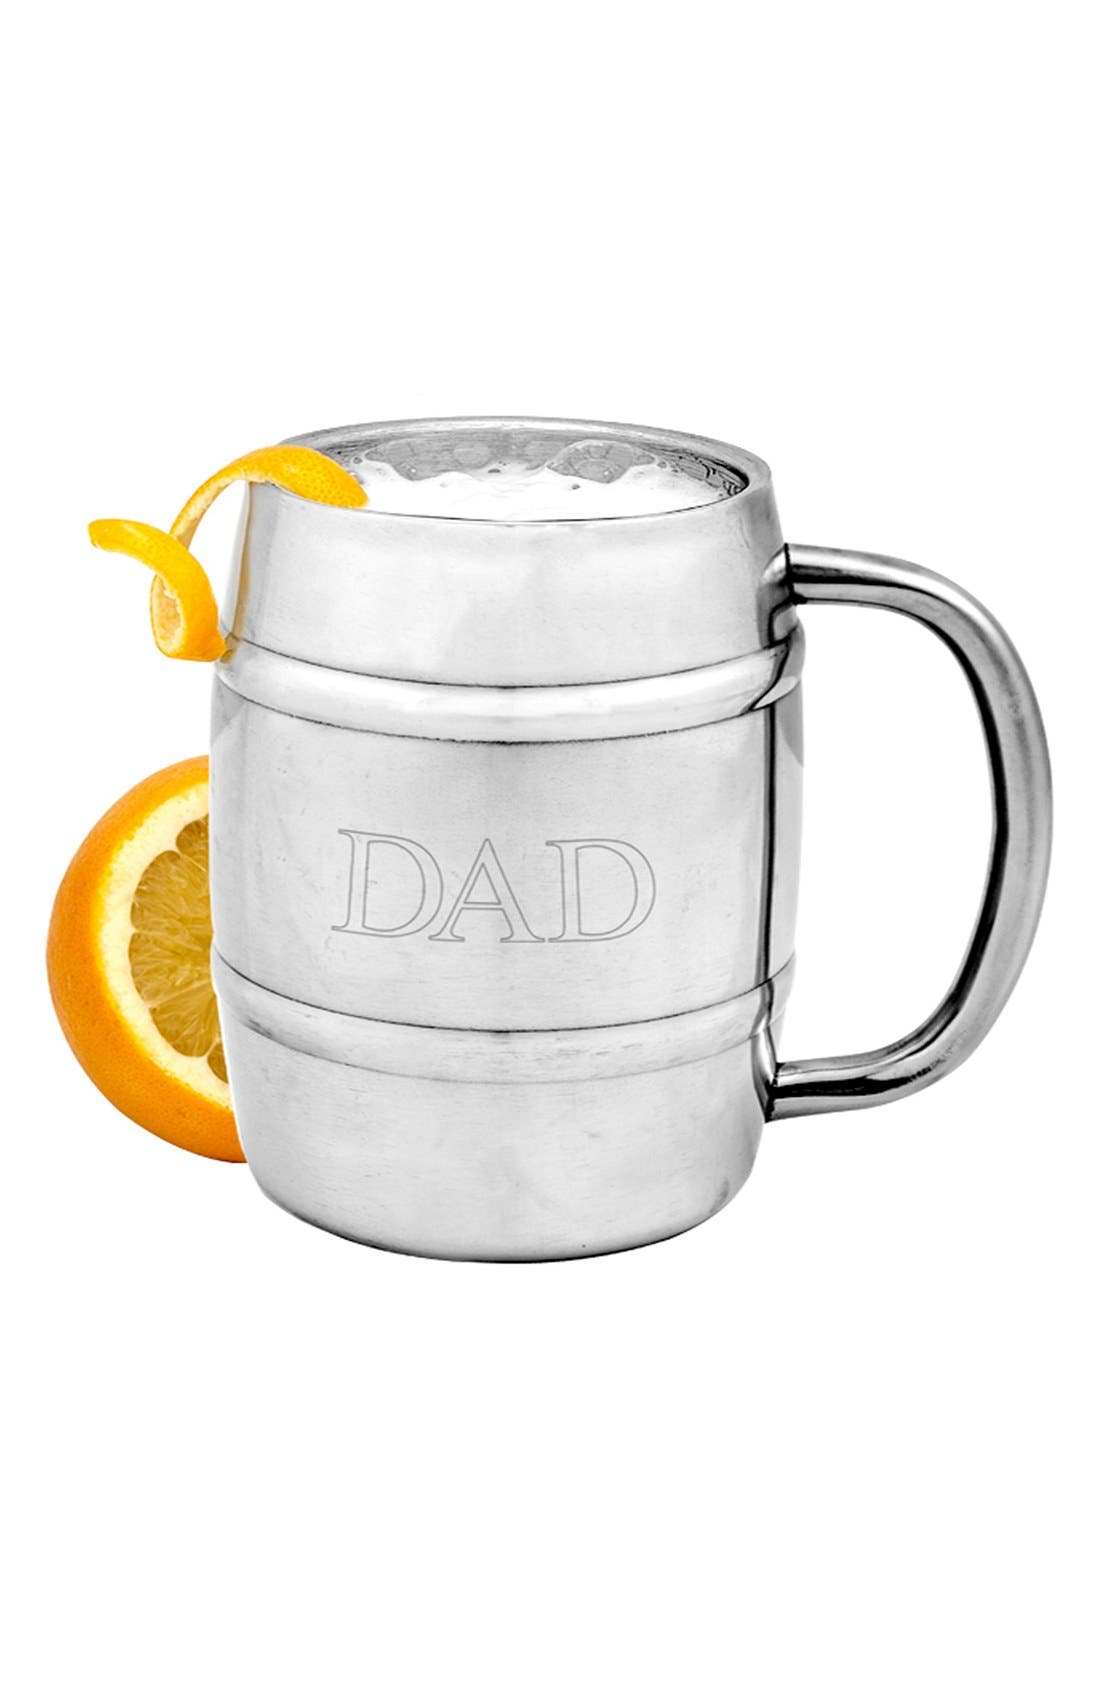 'Dad' Keg Mug,                             Main thumbnail 1, color,                             Silver